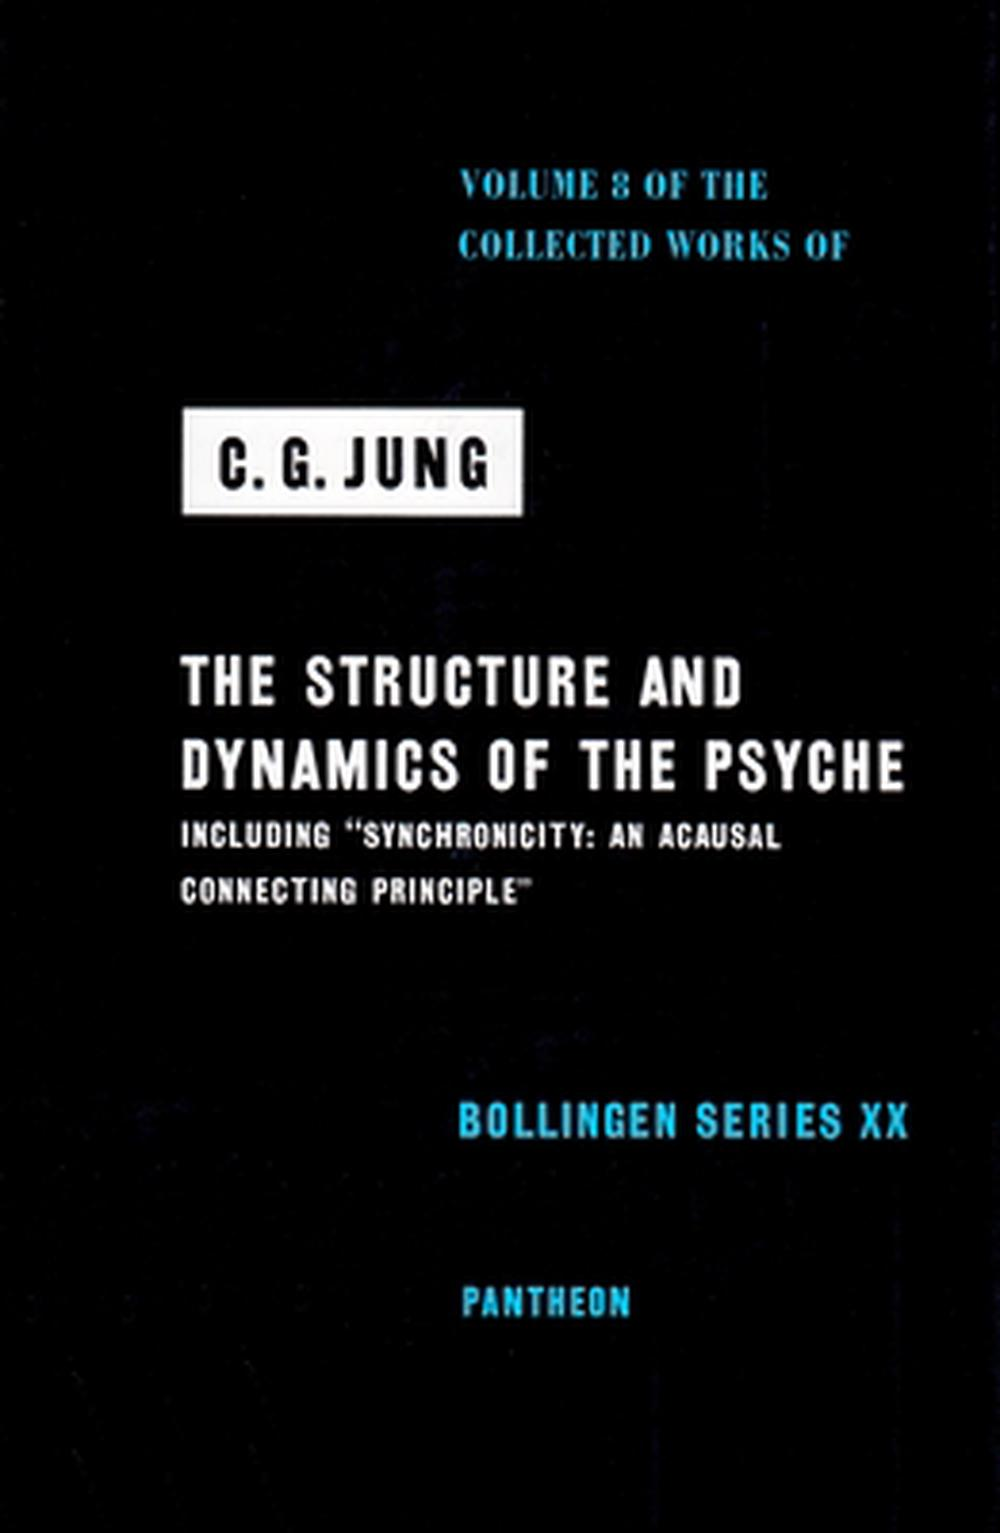 The Collected Works of C.G. Jung: Structure and Dynamics of the Psyche v. 8